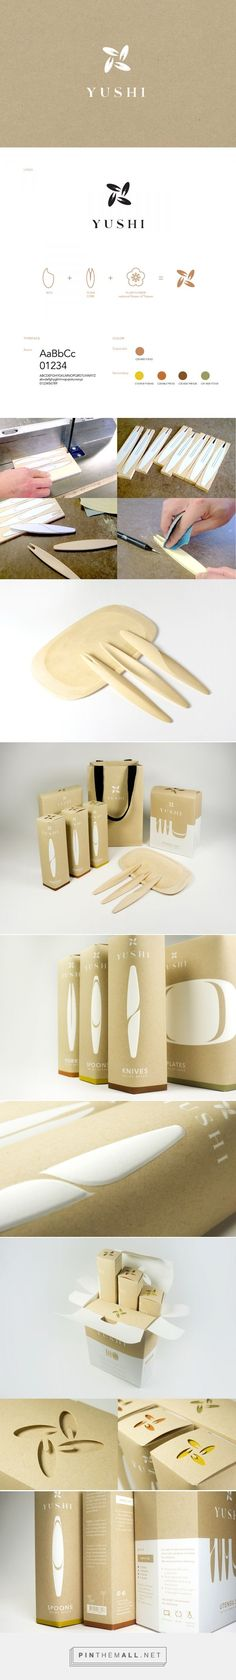 Packaging and branding for YUSHI on Behance by Ning Li New York, NY curated by Packaging Diva PD. Single-use, biodegradable tableware made from tree-f... - a grouped images picture - Pin Them All